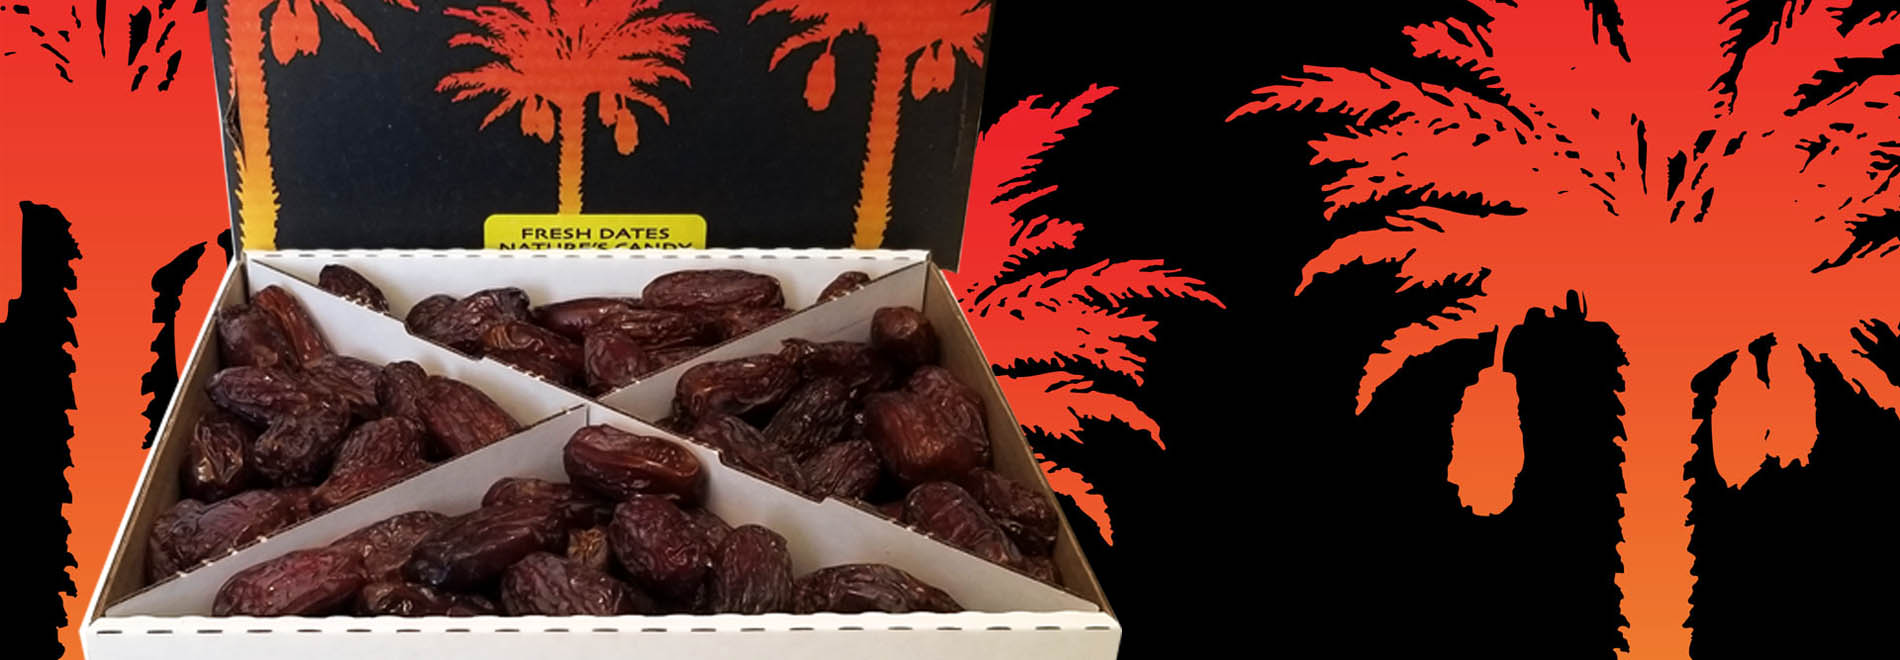 Dateland Grows the Freshest & Best Tasting Dates Available